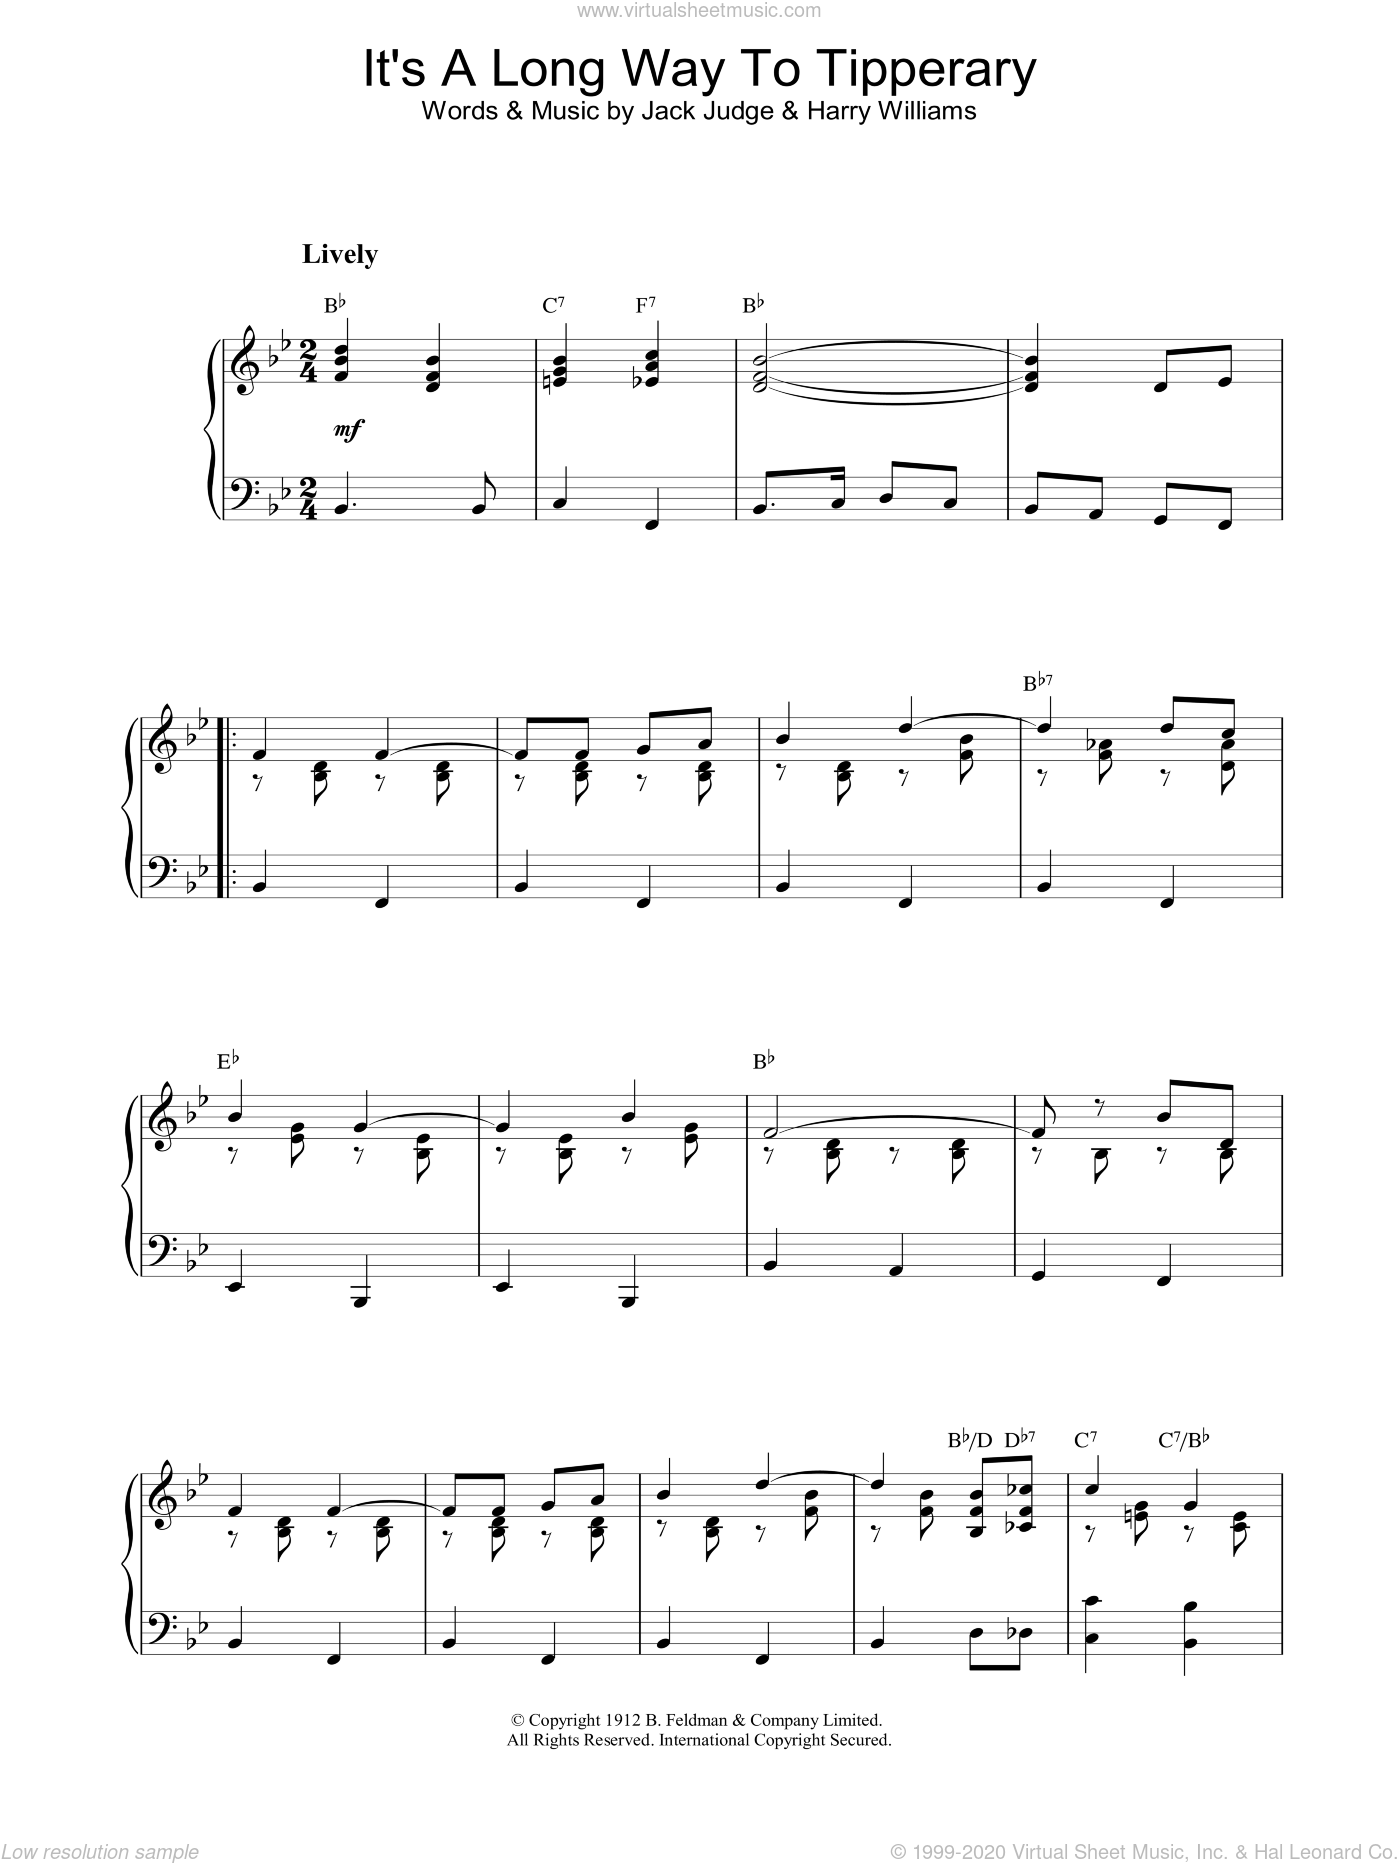 It's A Long Way To Tipperary sheet music for piano solo by J & Williams, H Judge